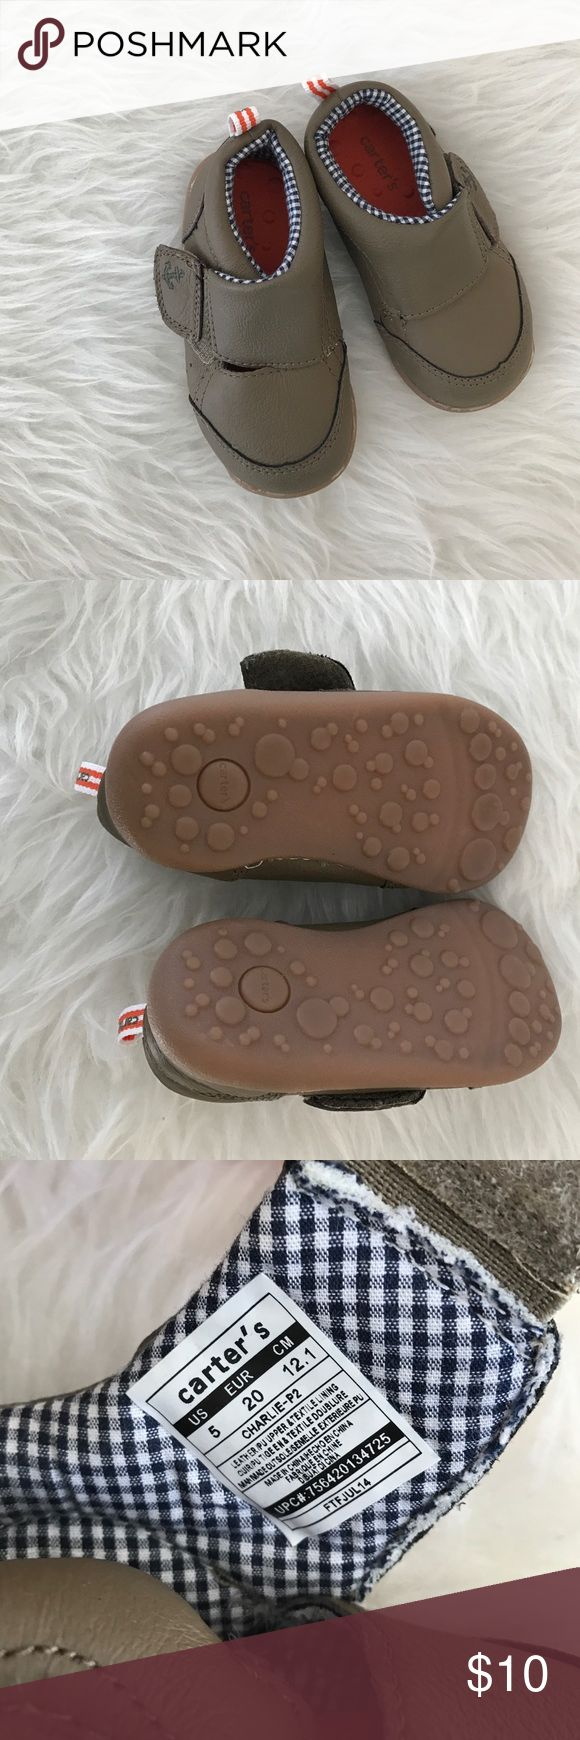 Carters baby shoes! GUC Carters baby shoes. Size 5! Not much wear on the bottom. Brown leather like shoes!  Some slight imperfections from wear. Carter's Shoes Baby & Walker